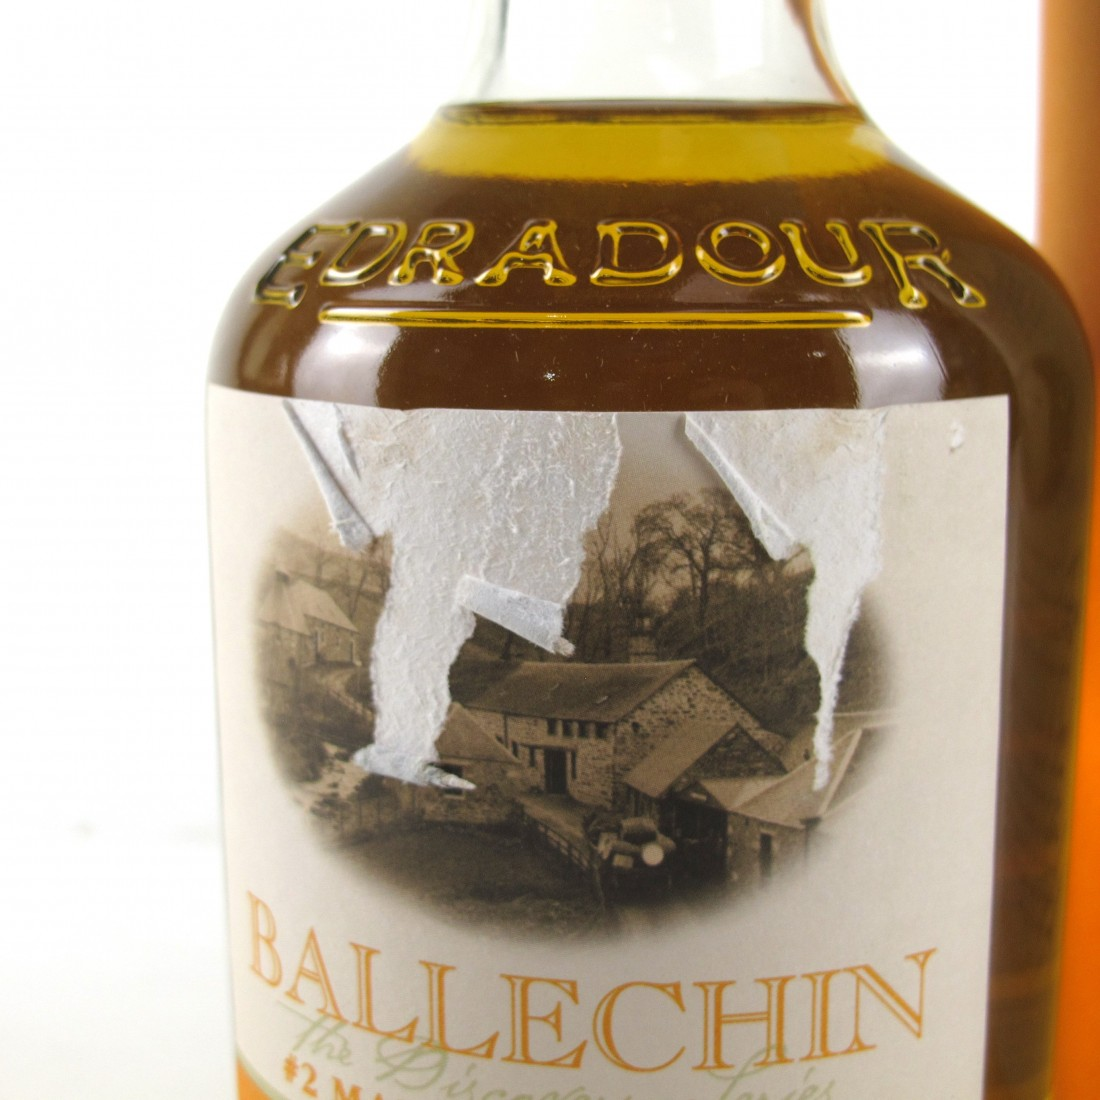 Edradour Ballechin Batch #2 / Madeira Matured